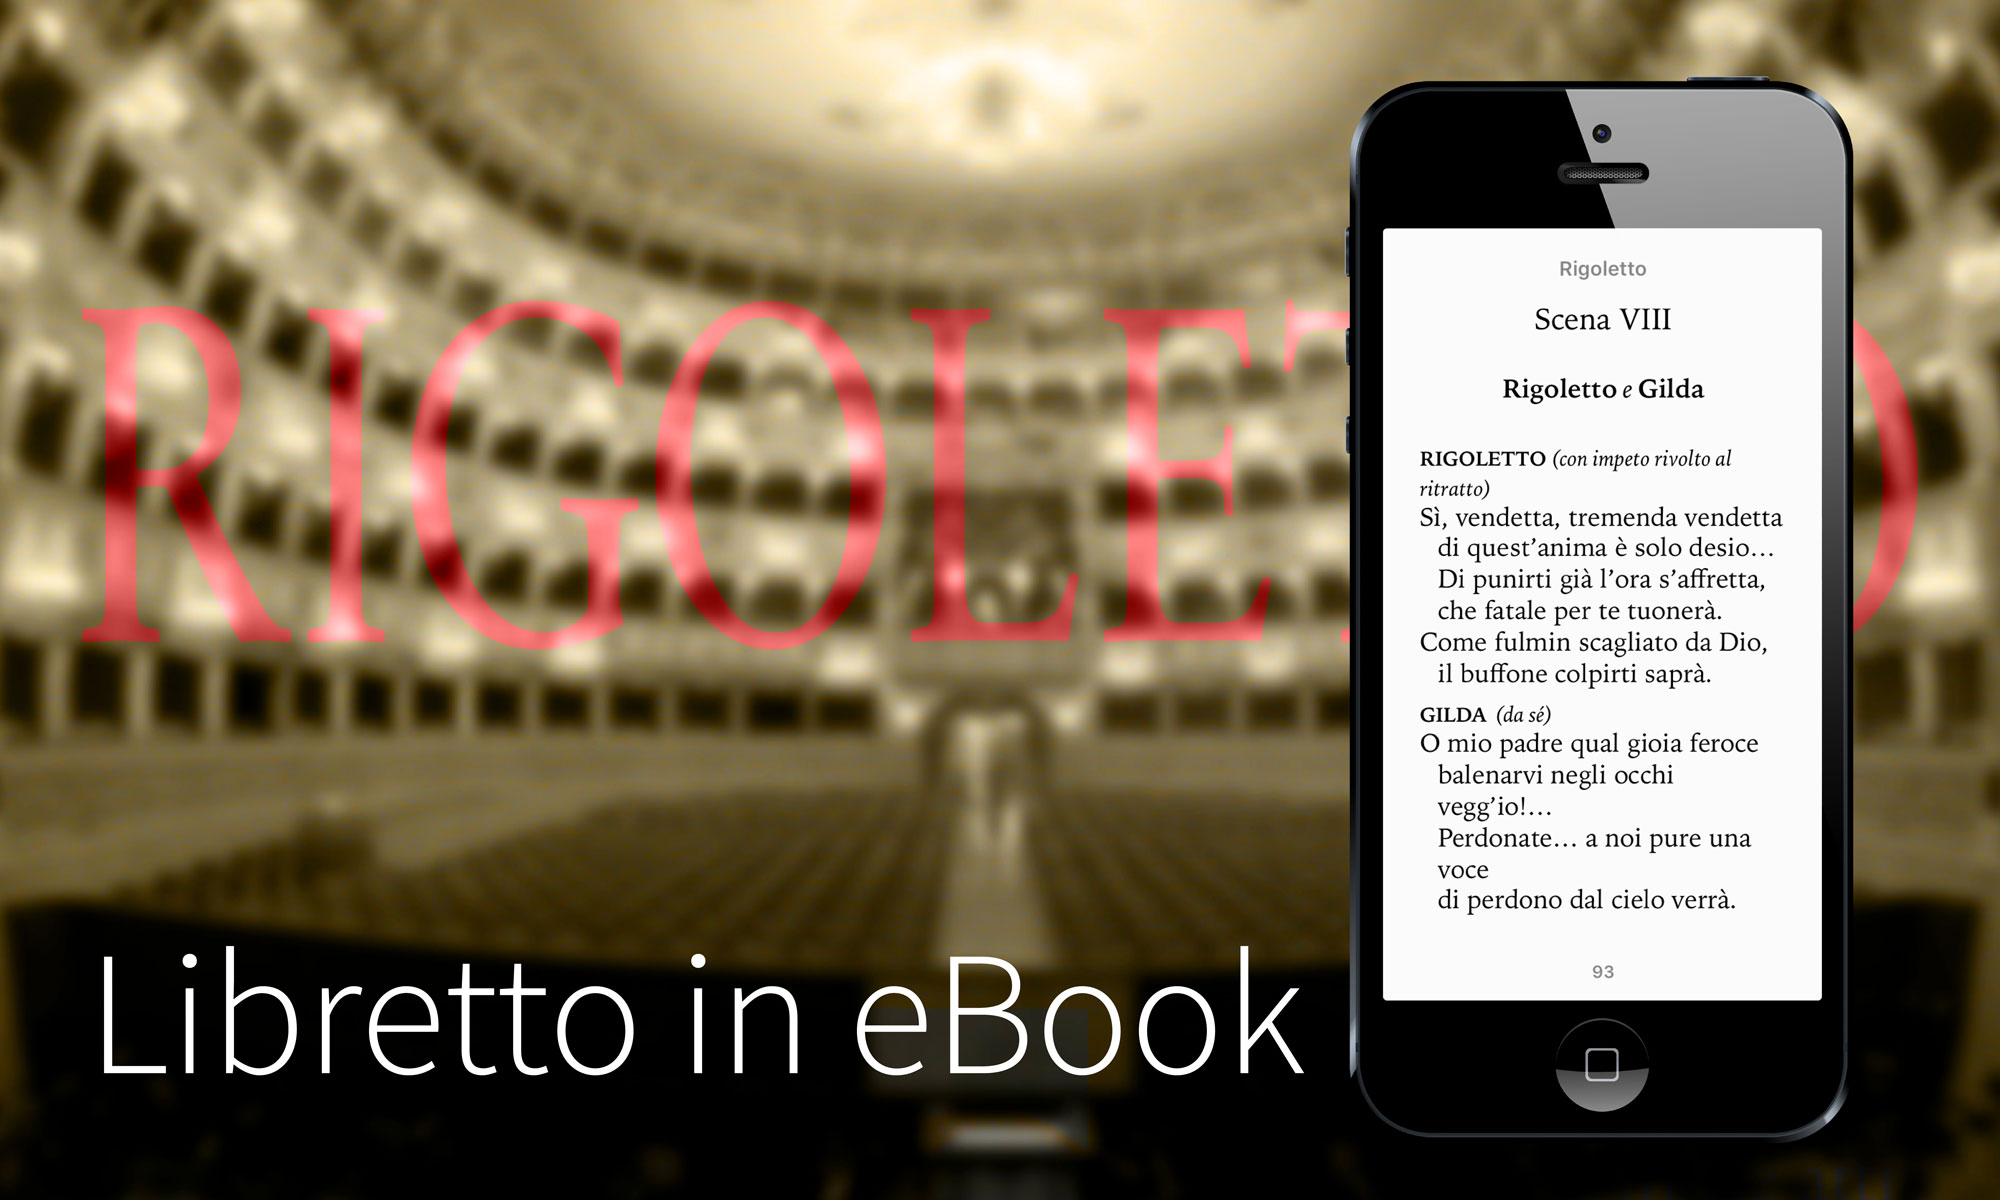 Libretto ebook Rigoletto